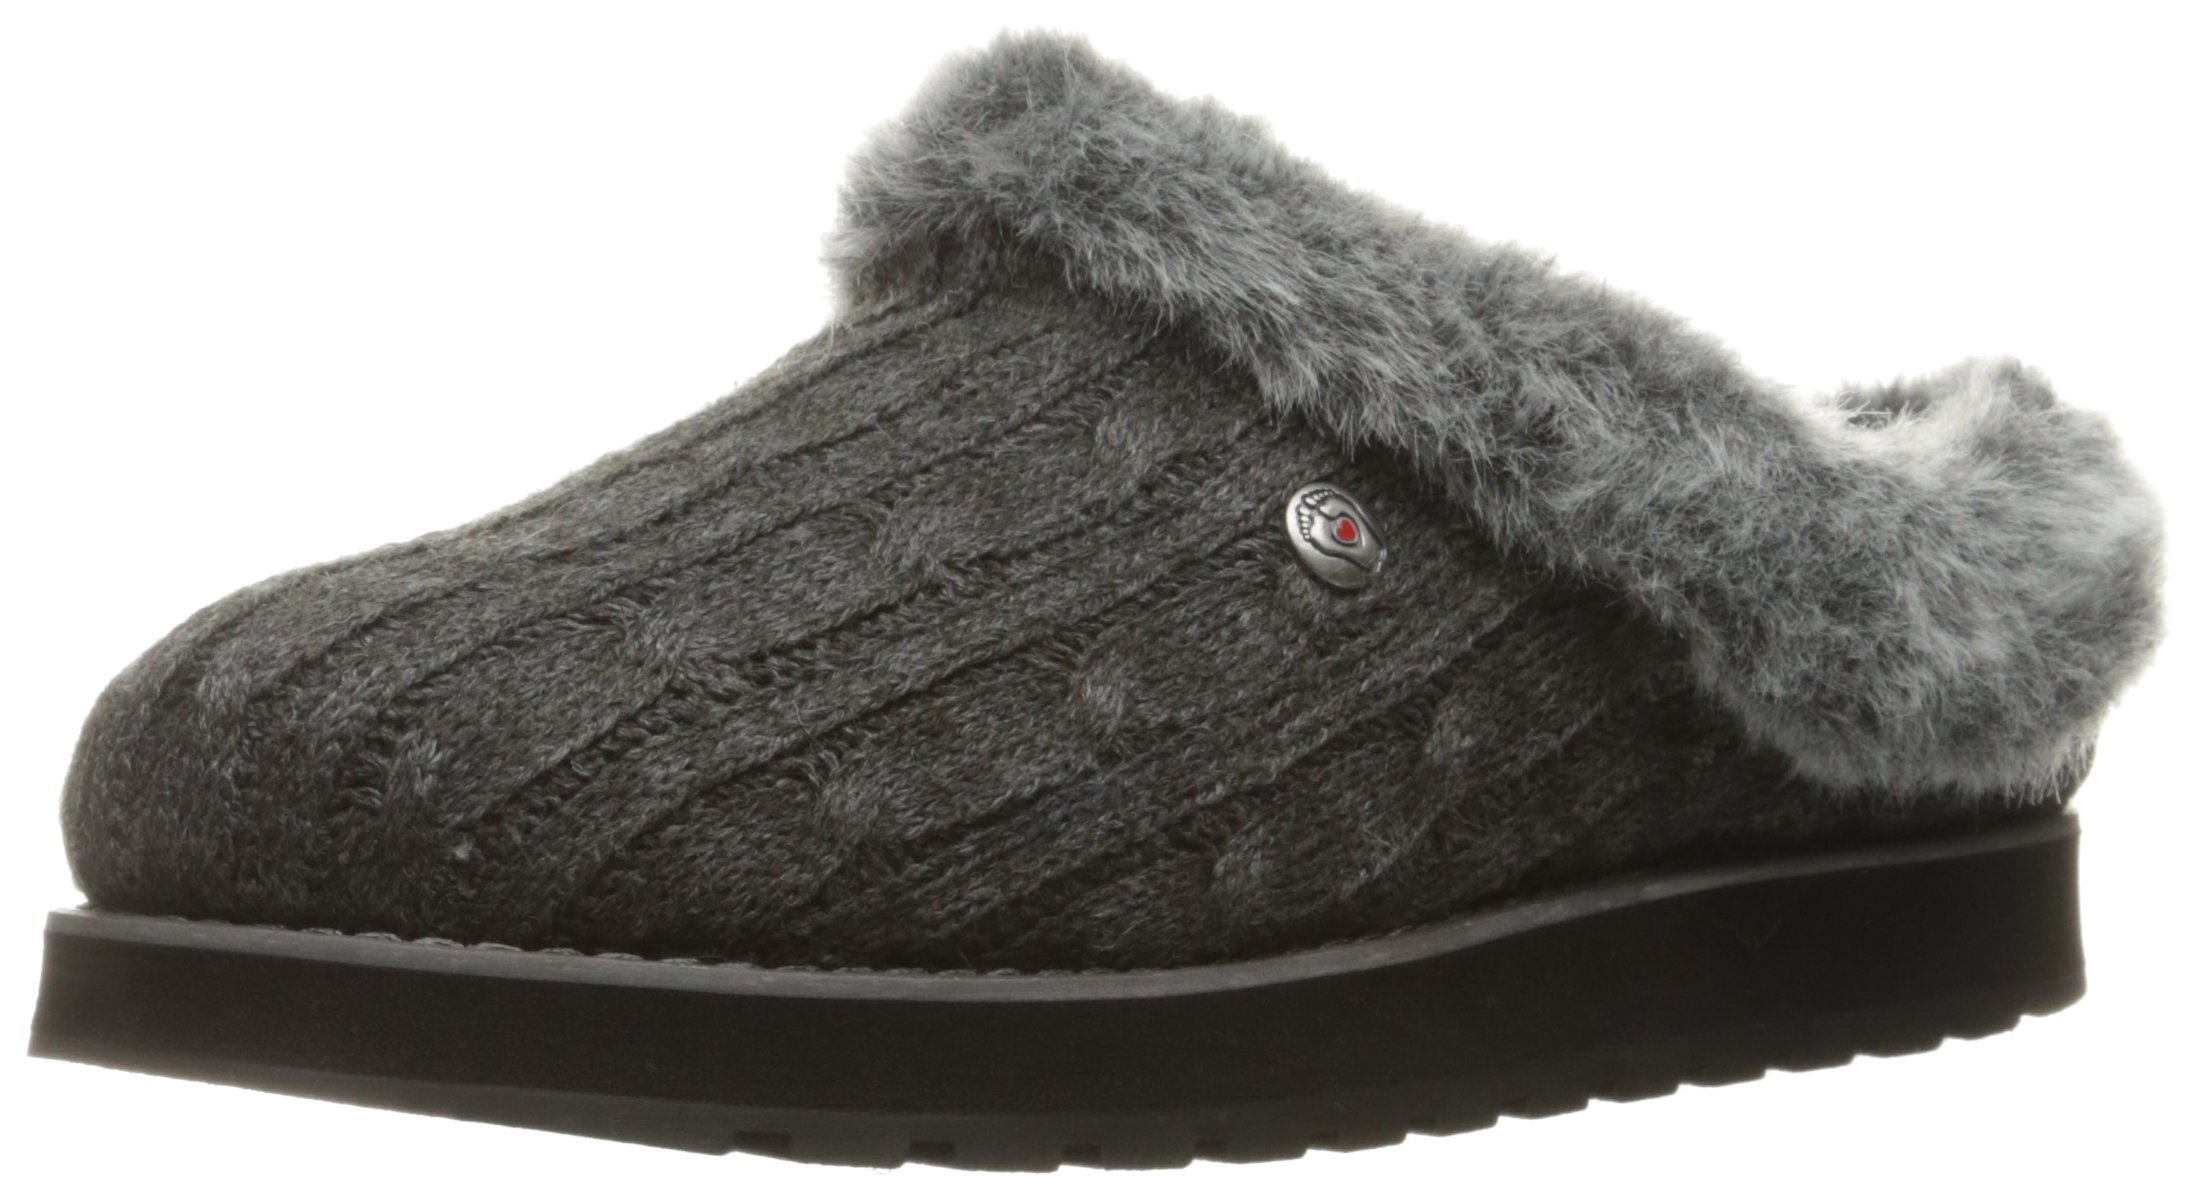 Skechers BOBS from Women's Keepsakes Ice Angel Slipper, Charcoal, 9 M US